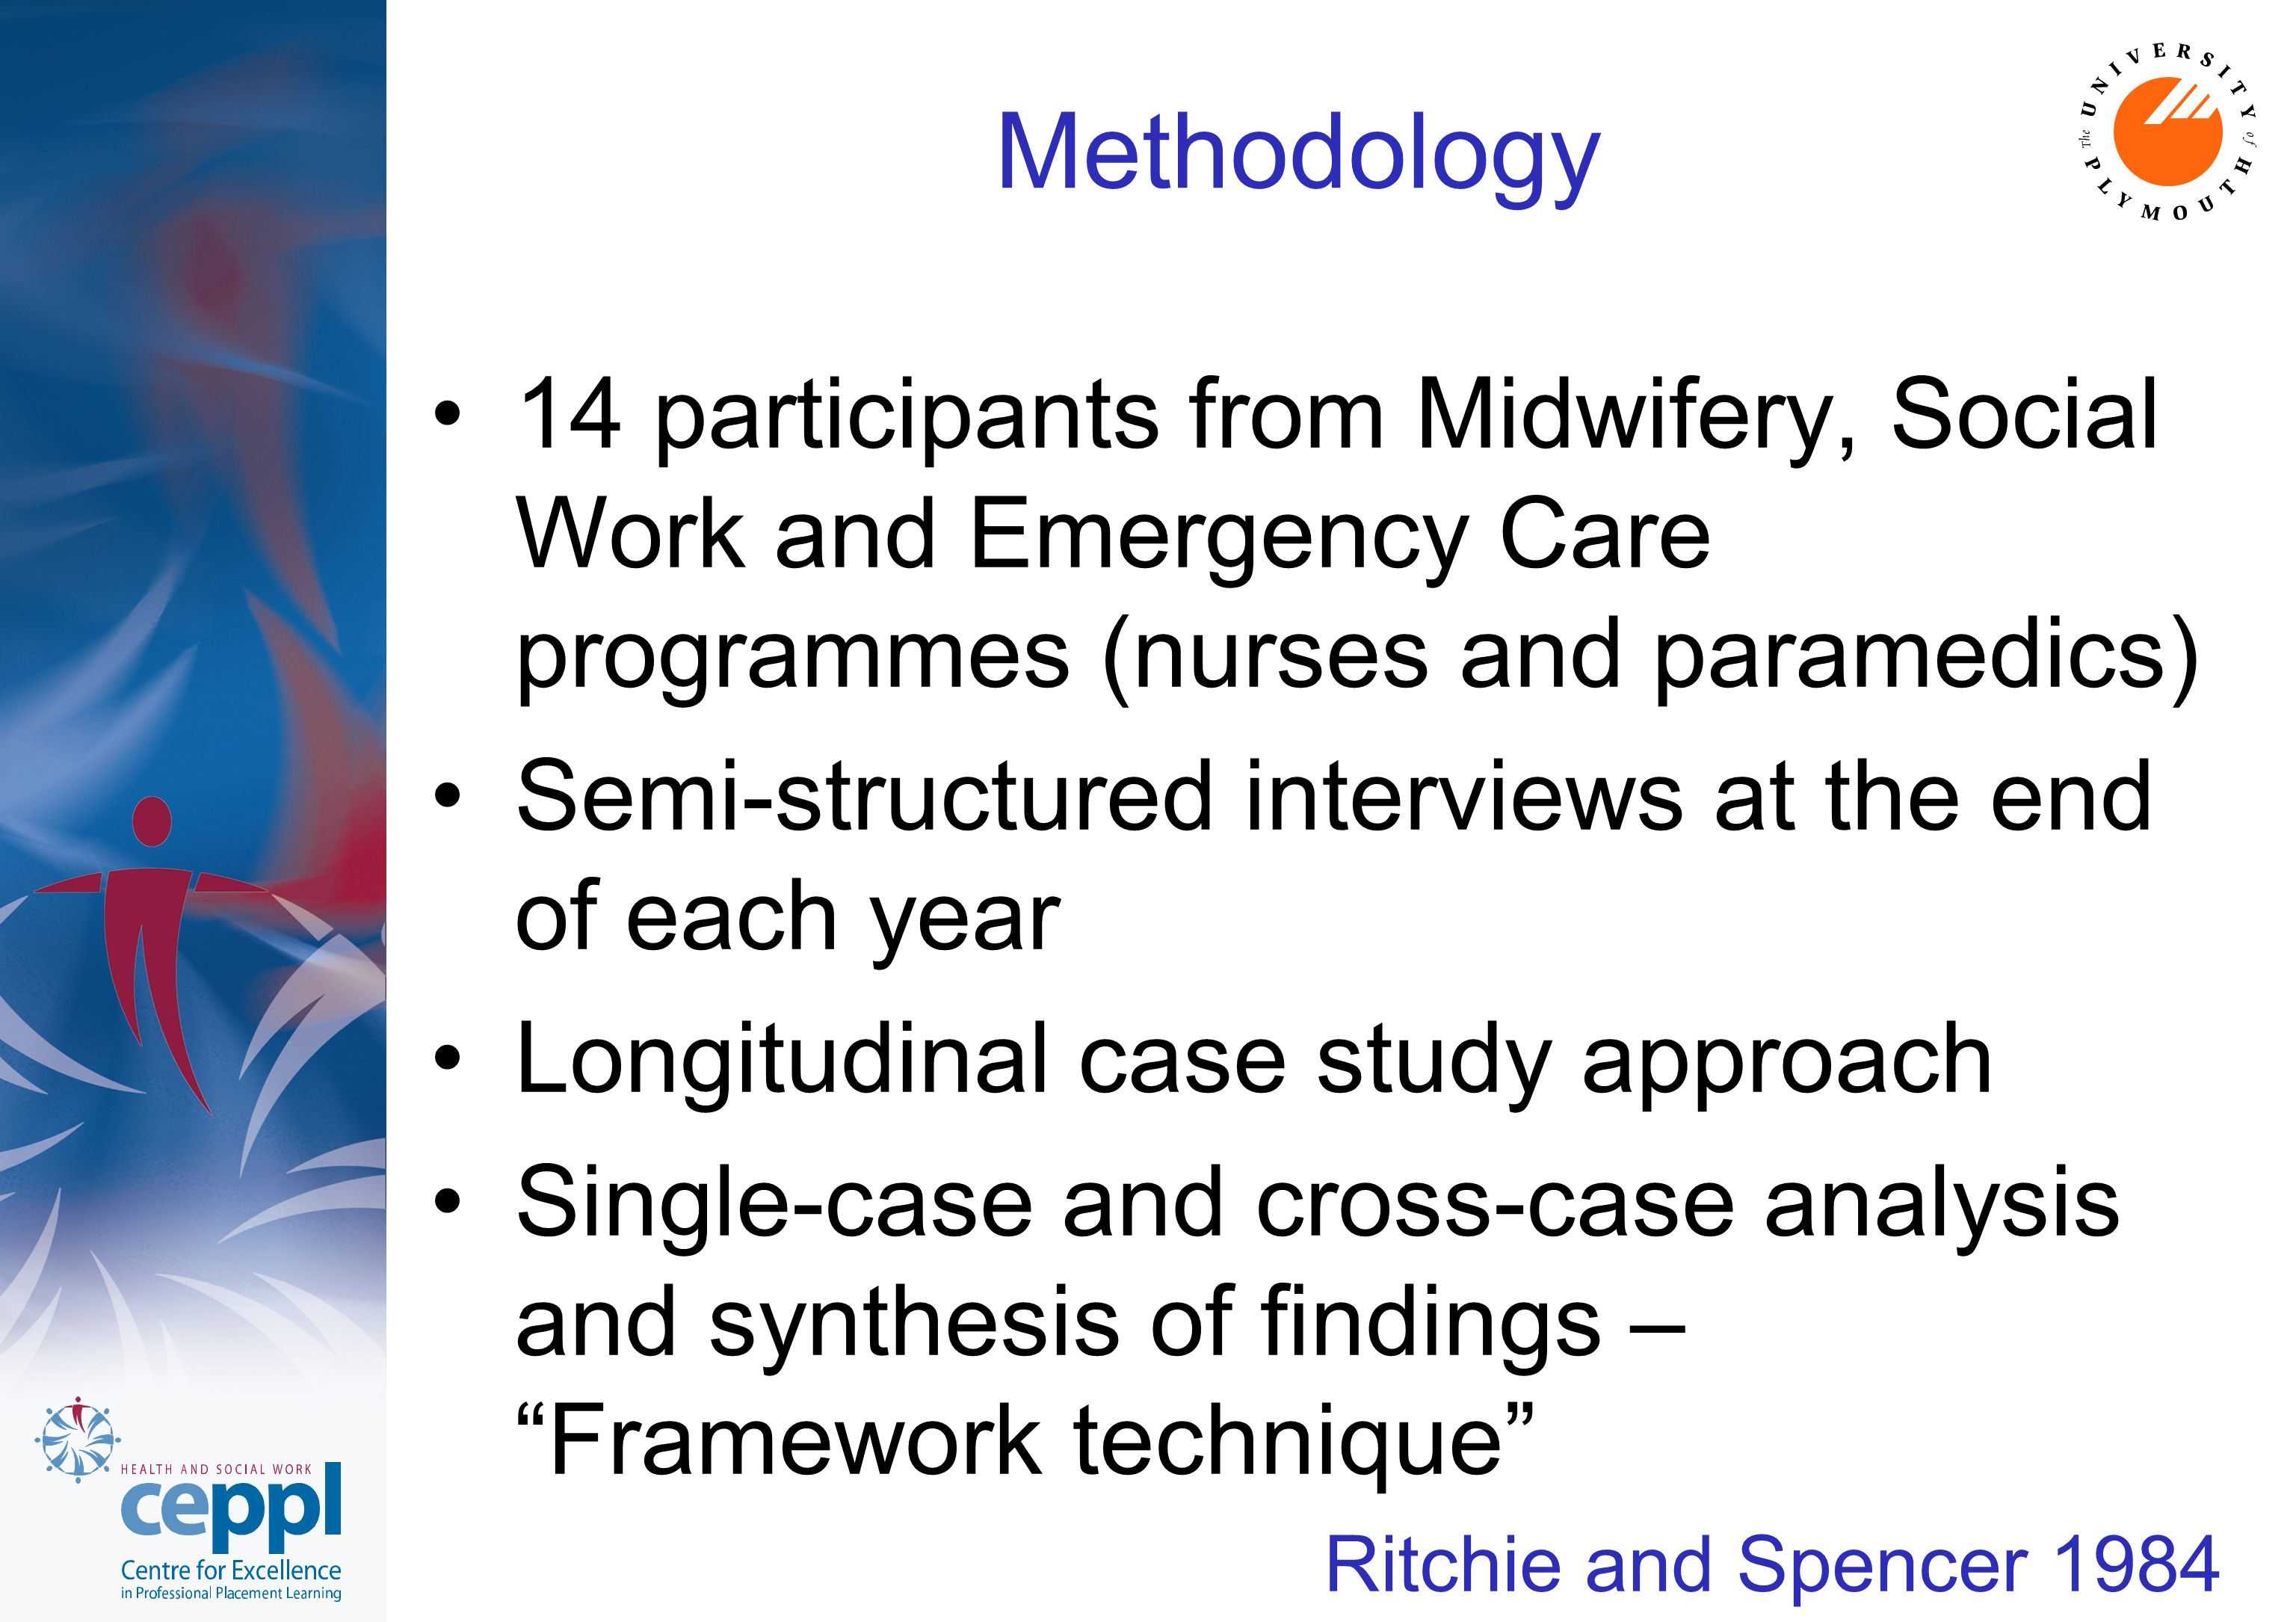 Methodology 14 participants from Midwifery, Social Work and Emergency Care programmes (nurses and paramedics) Semi-structured interviews at the end of each year Longitudinal case study approach Single-case and cross-case analysis and synthesis of findings – Framework technique Ritchie and Spencer 1984